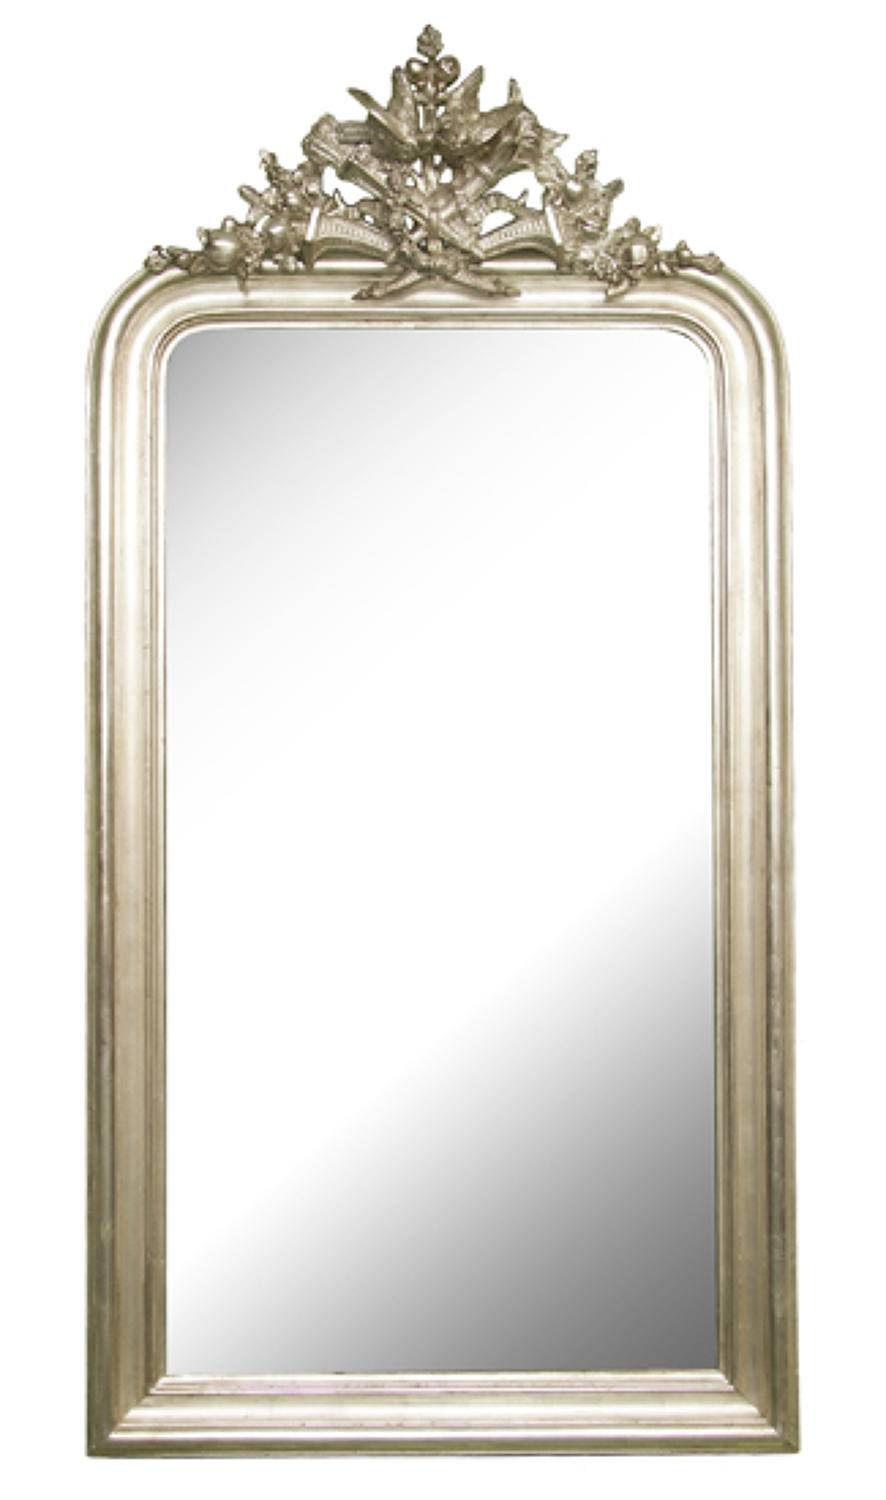 French Crested Antique Silver Gilded Mirror In Antique Gilded Inside Silver Gilded Mirrors (View 3 of 15)